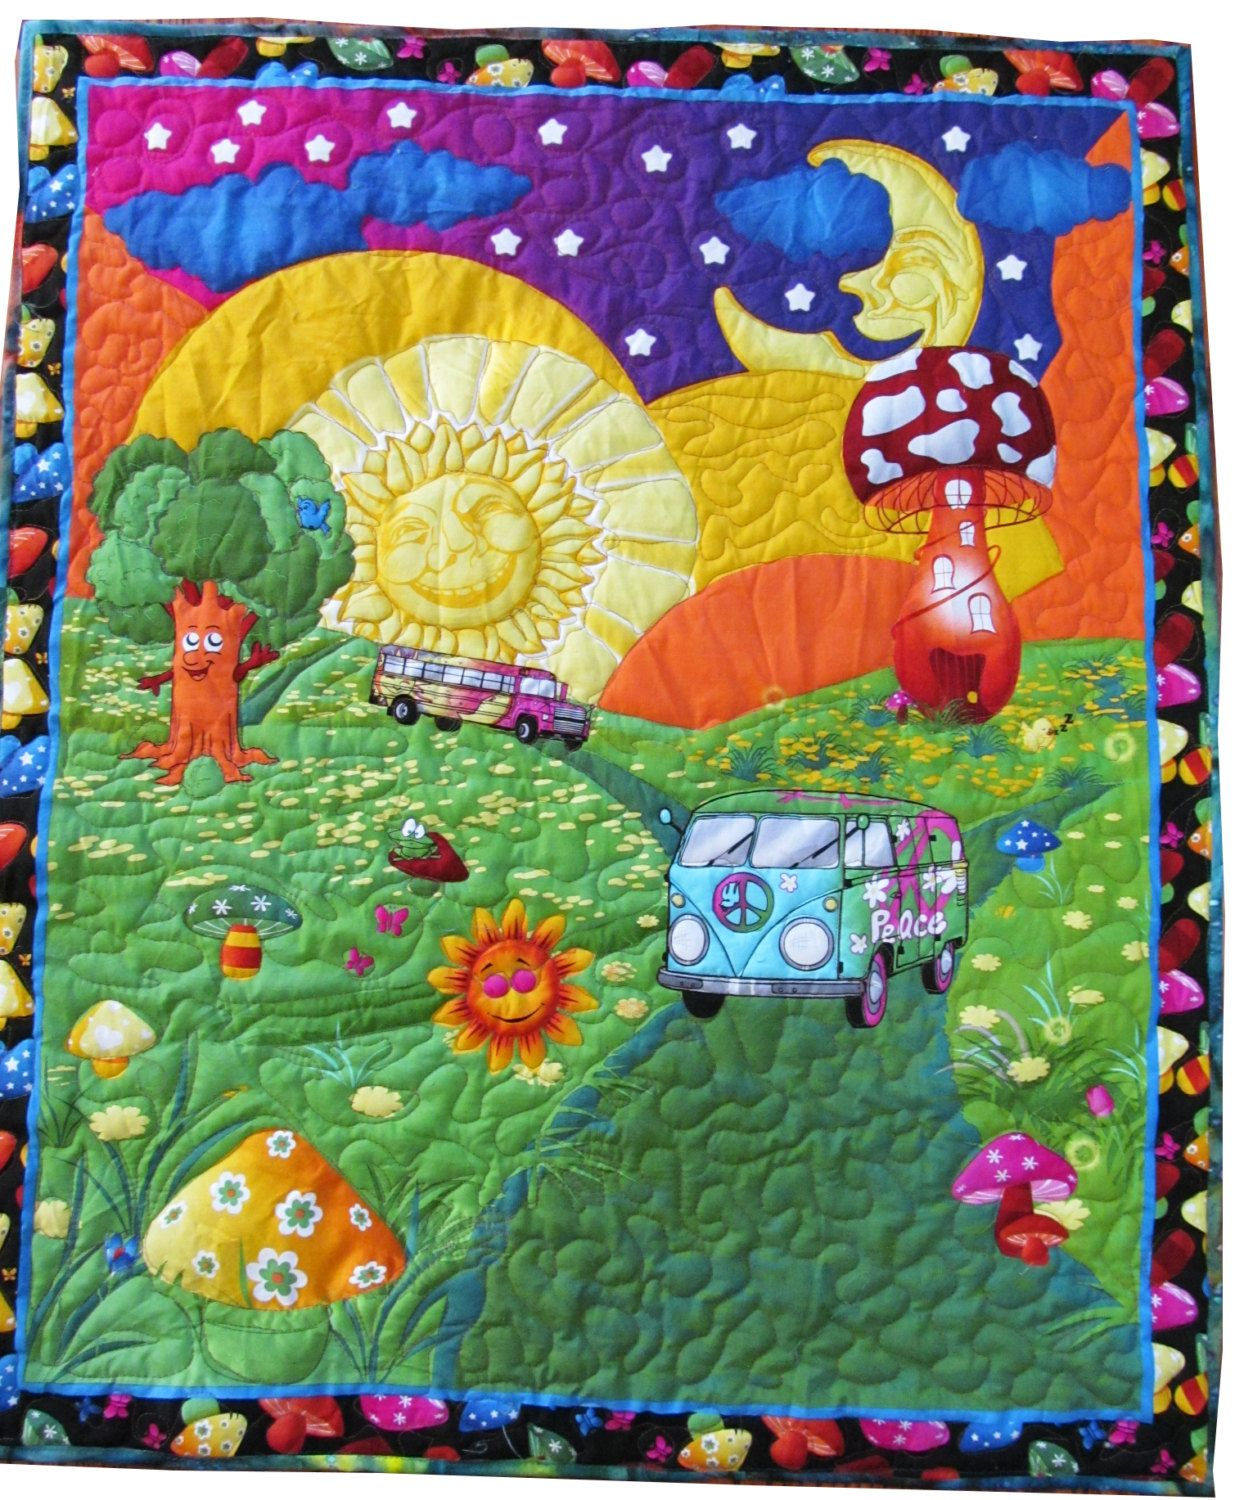 Baby quilt child quilt kids 34 x 40 psychedelic lap for Childrens quilt fabric